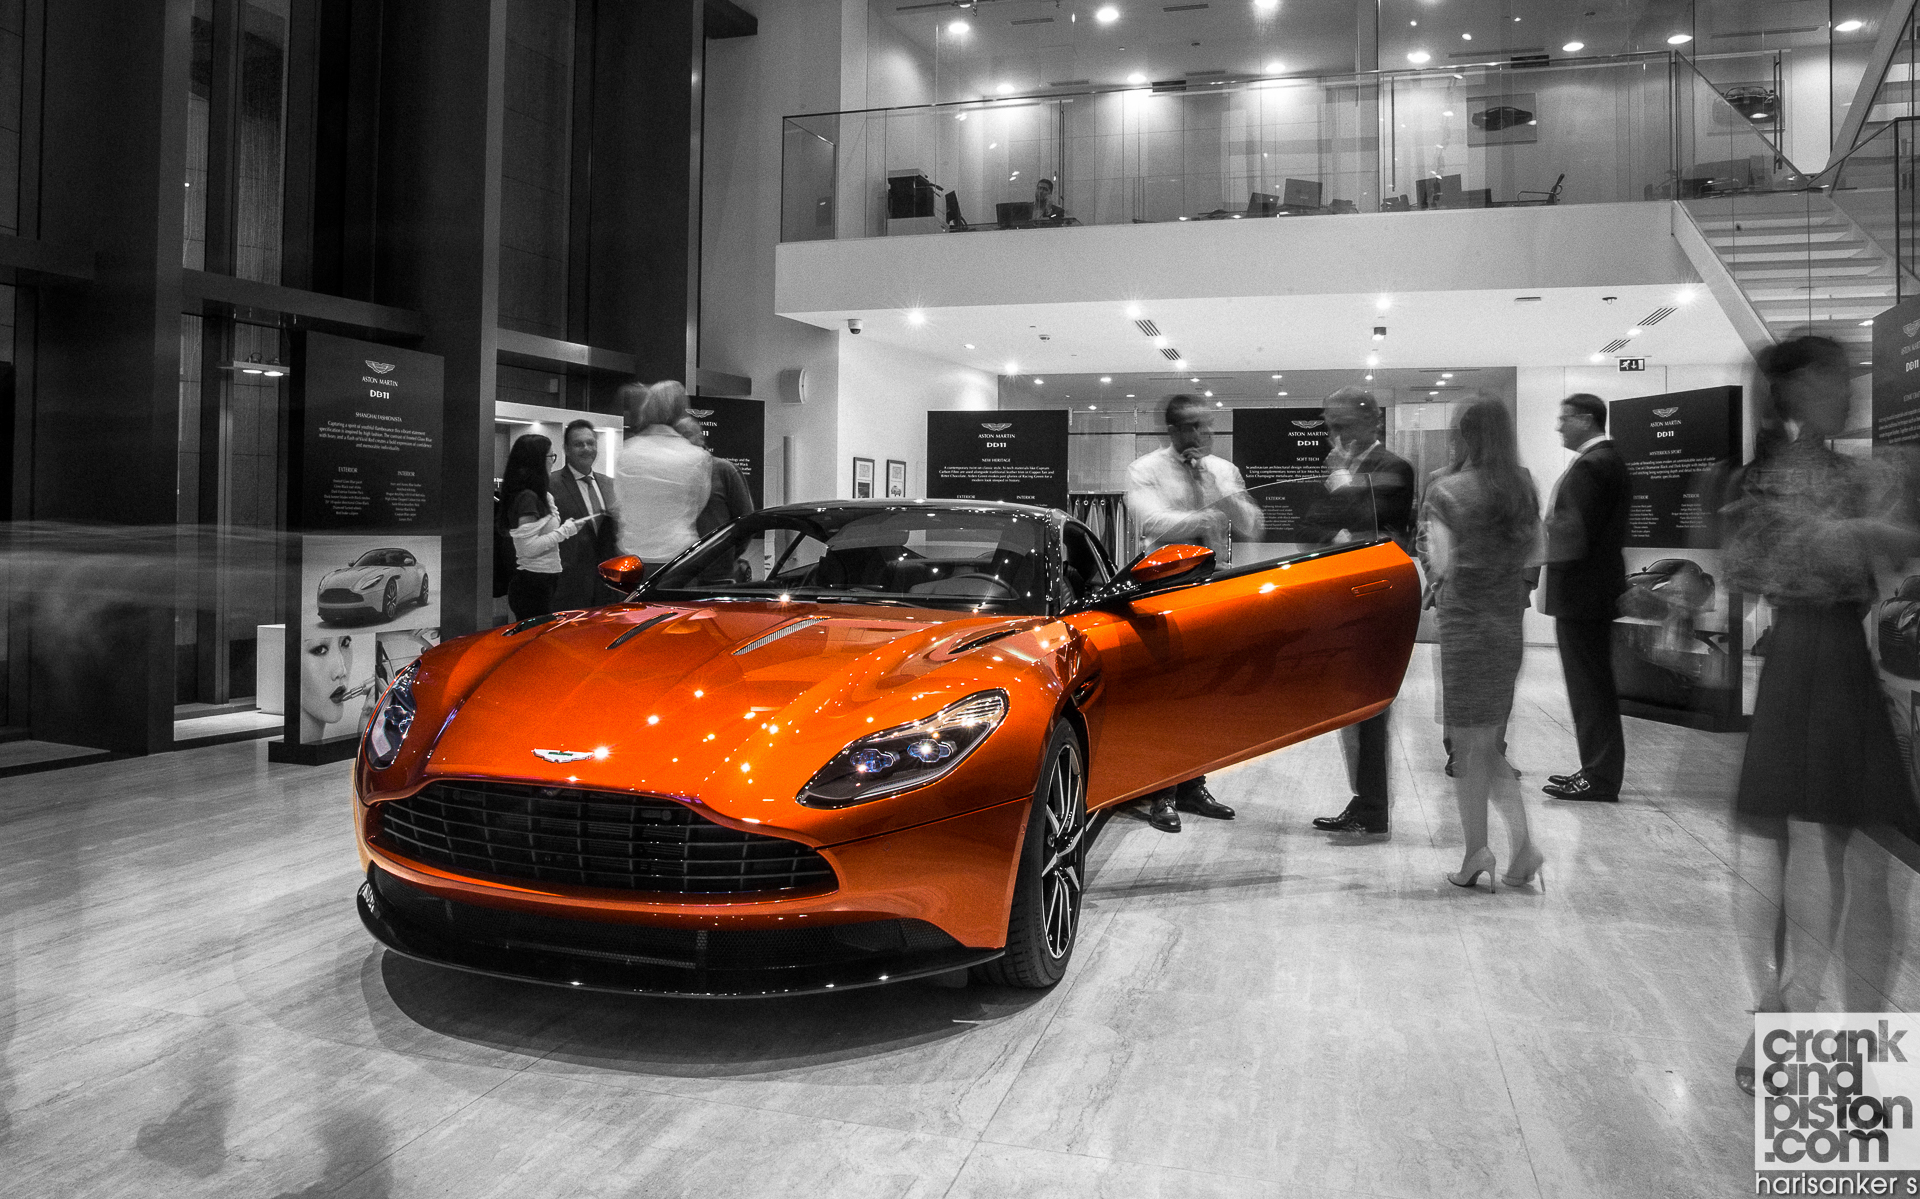 Aston Martin DB11 Unveil WALLPAPERS crankandpiston-3